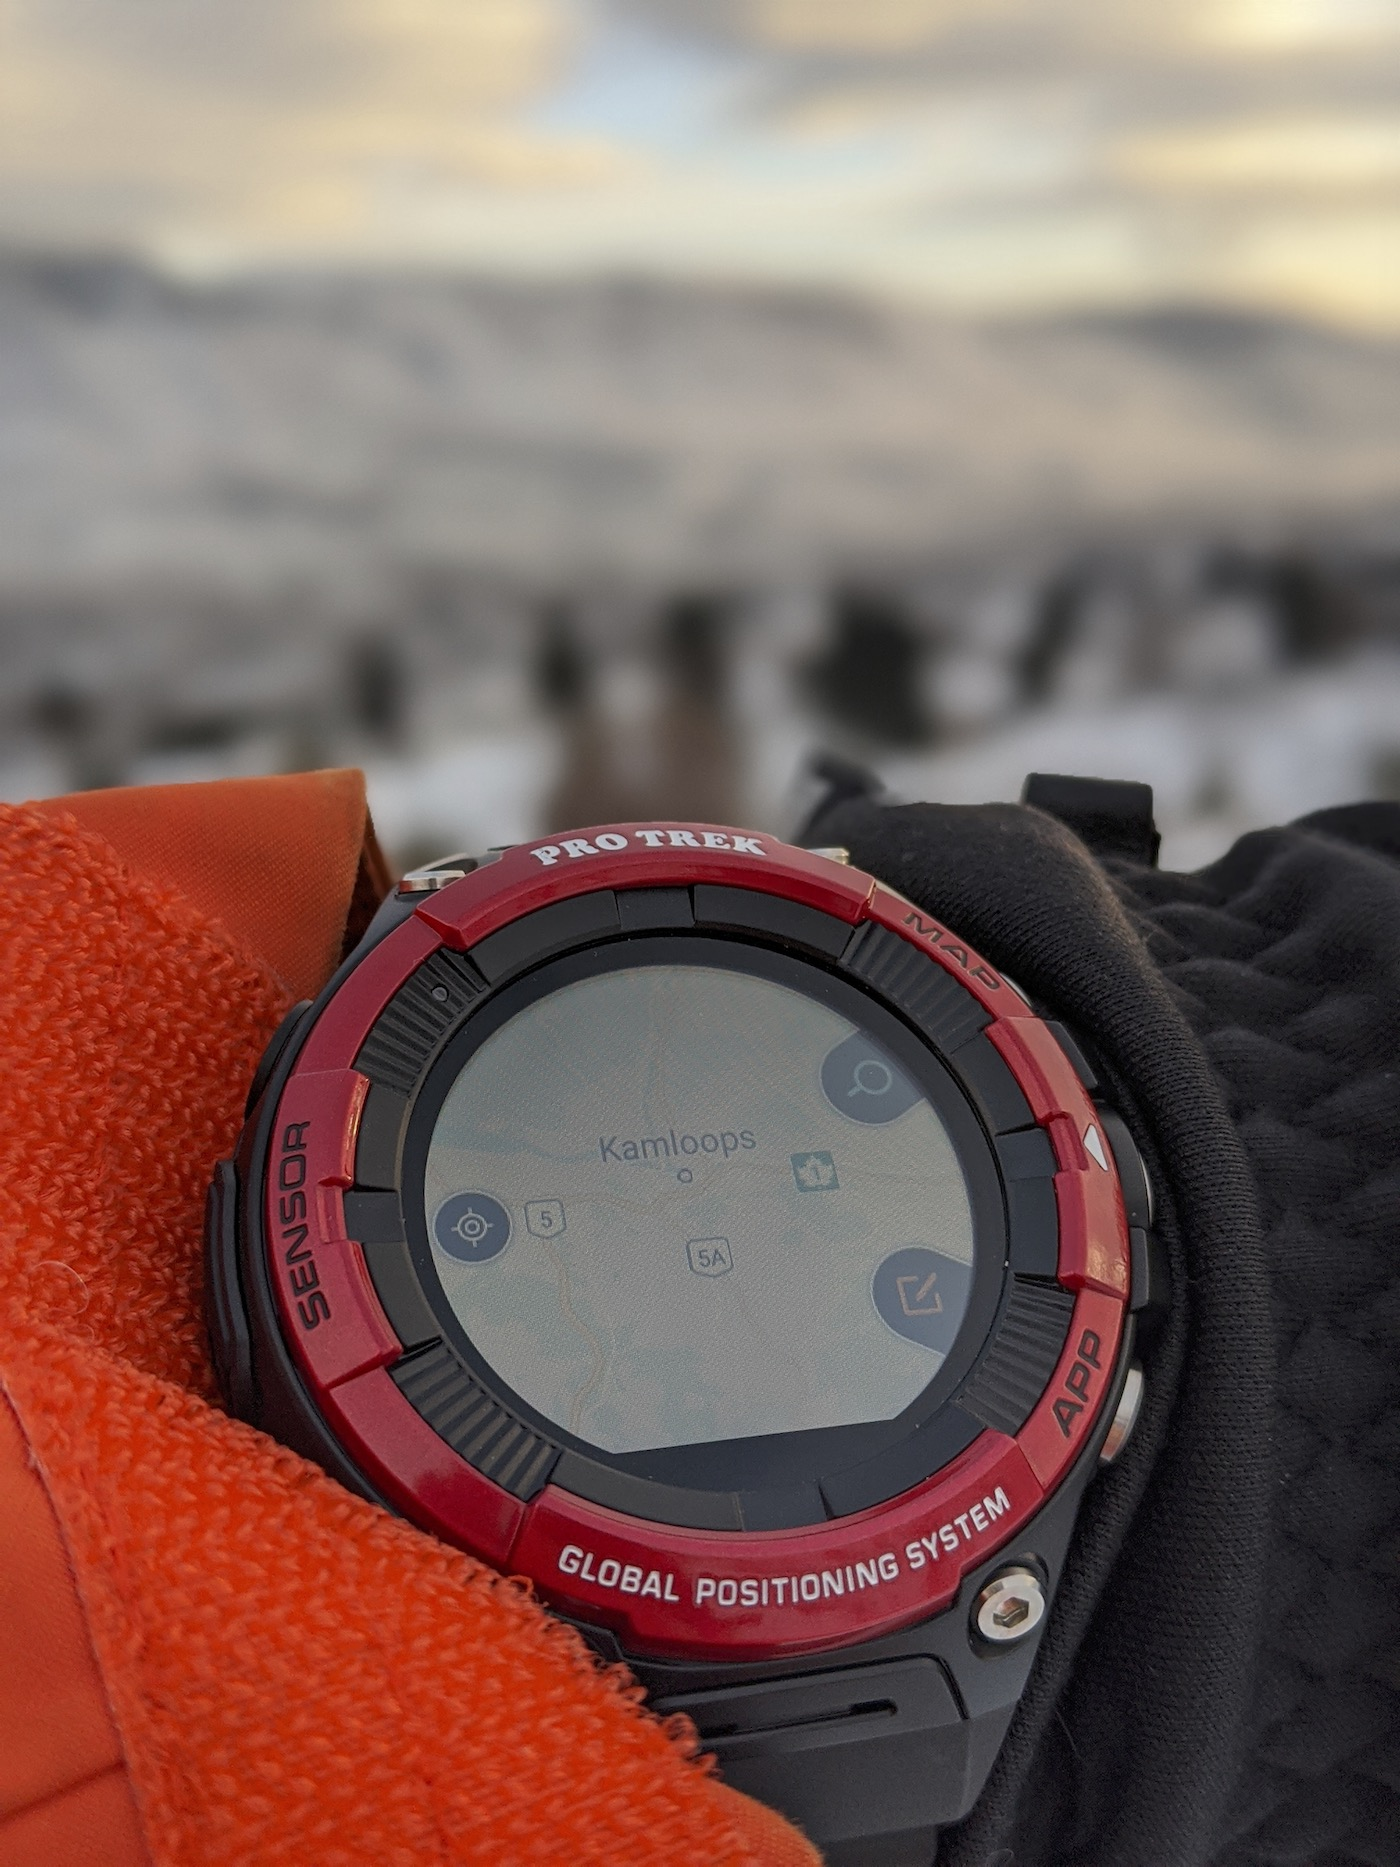 Casio Pro Trek WSD-F21 HR Watch Review Wrist Time Reviews